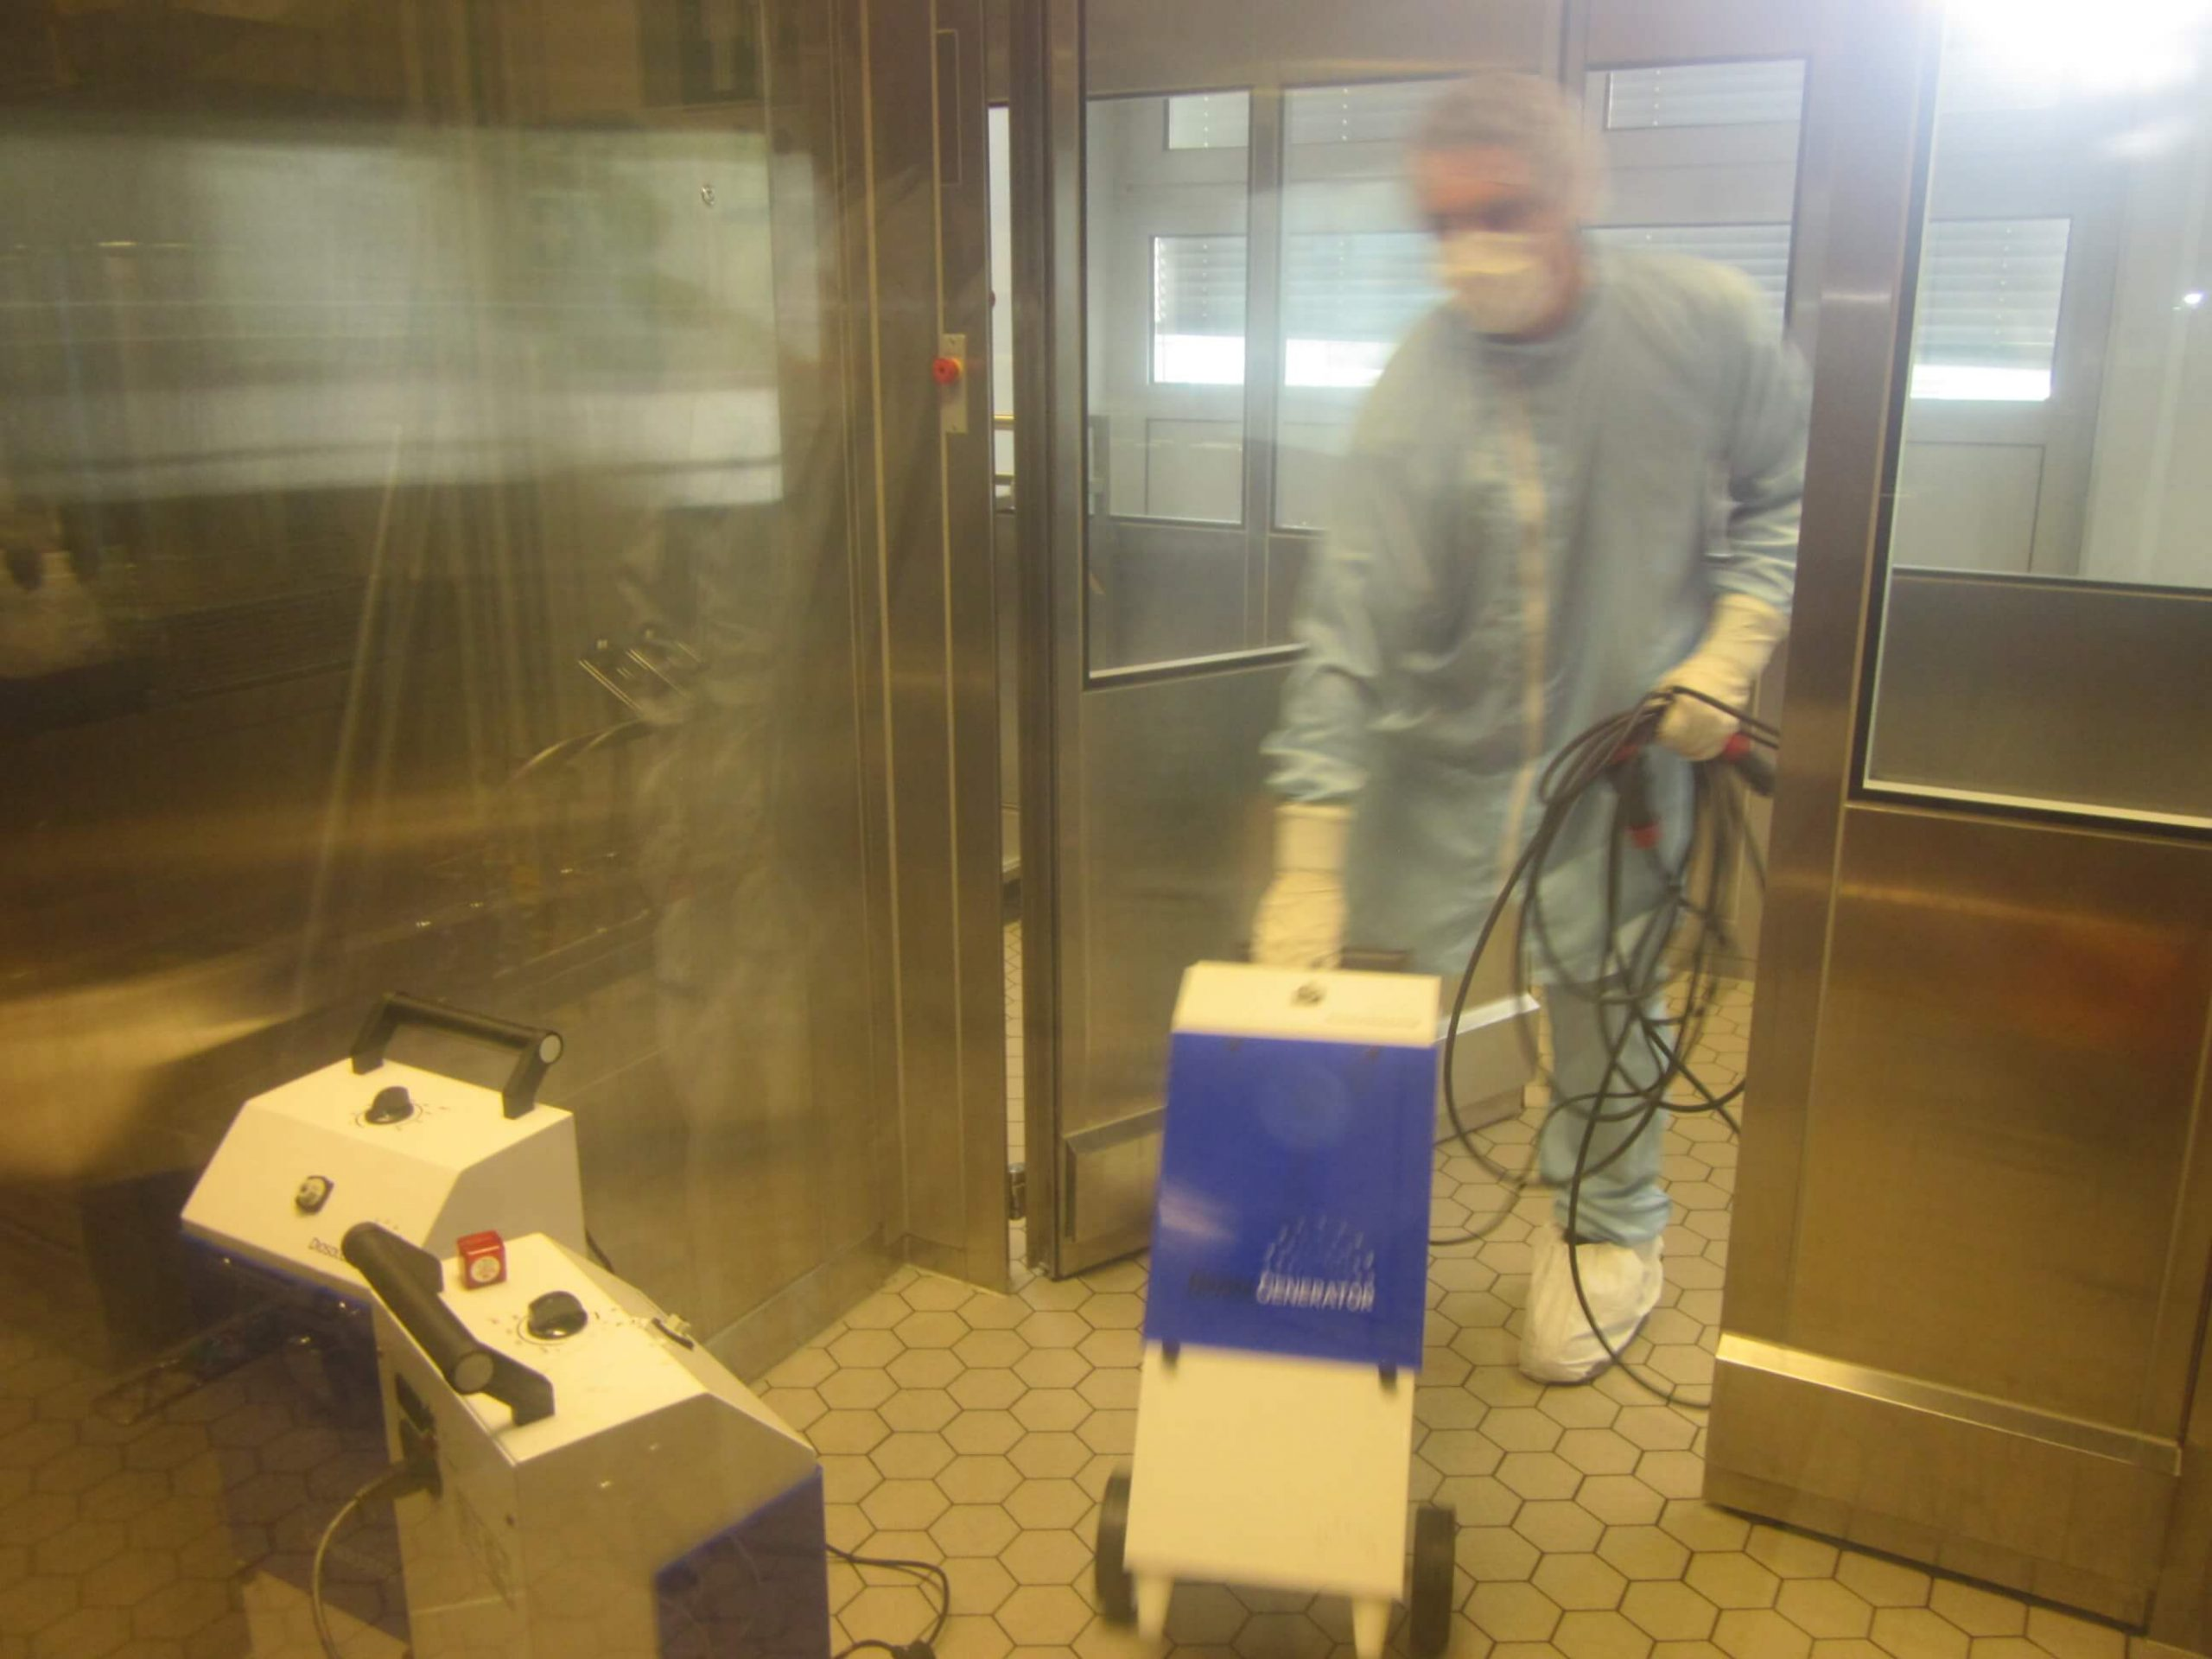 Cleanroom cleaning disinfection